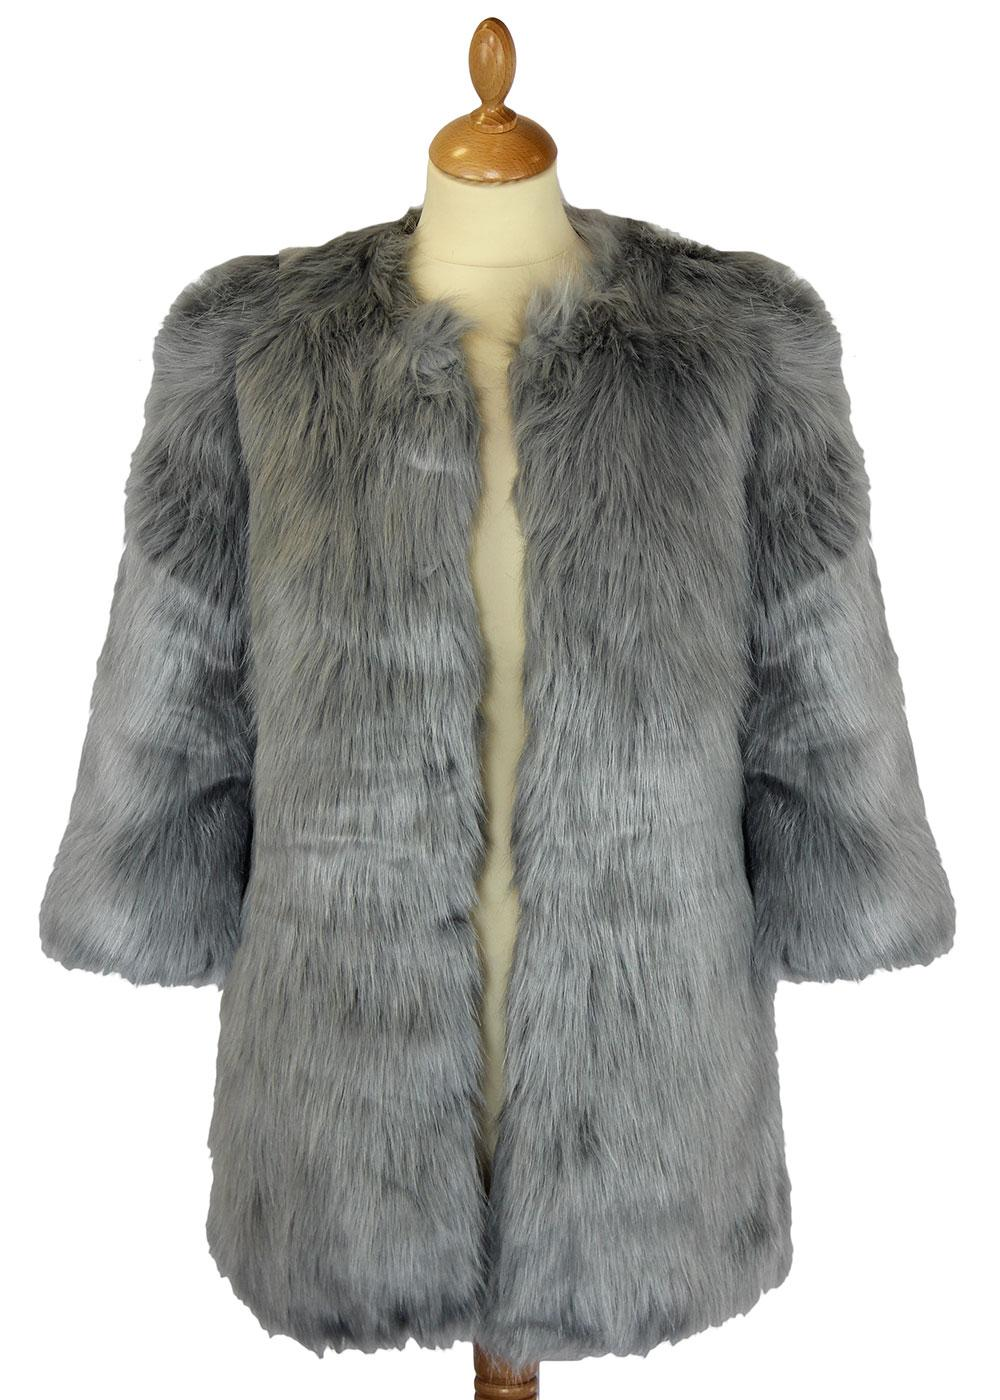 Indiana DESIGNER DUCHESS Retro Faux Fur Jacket